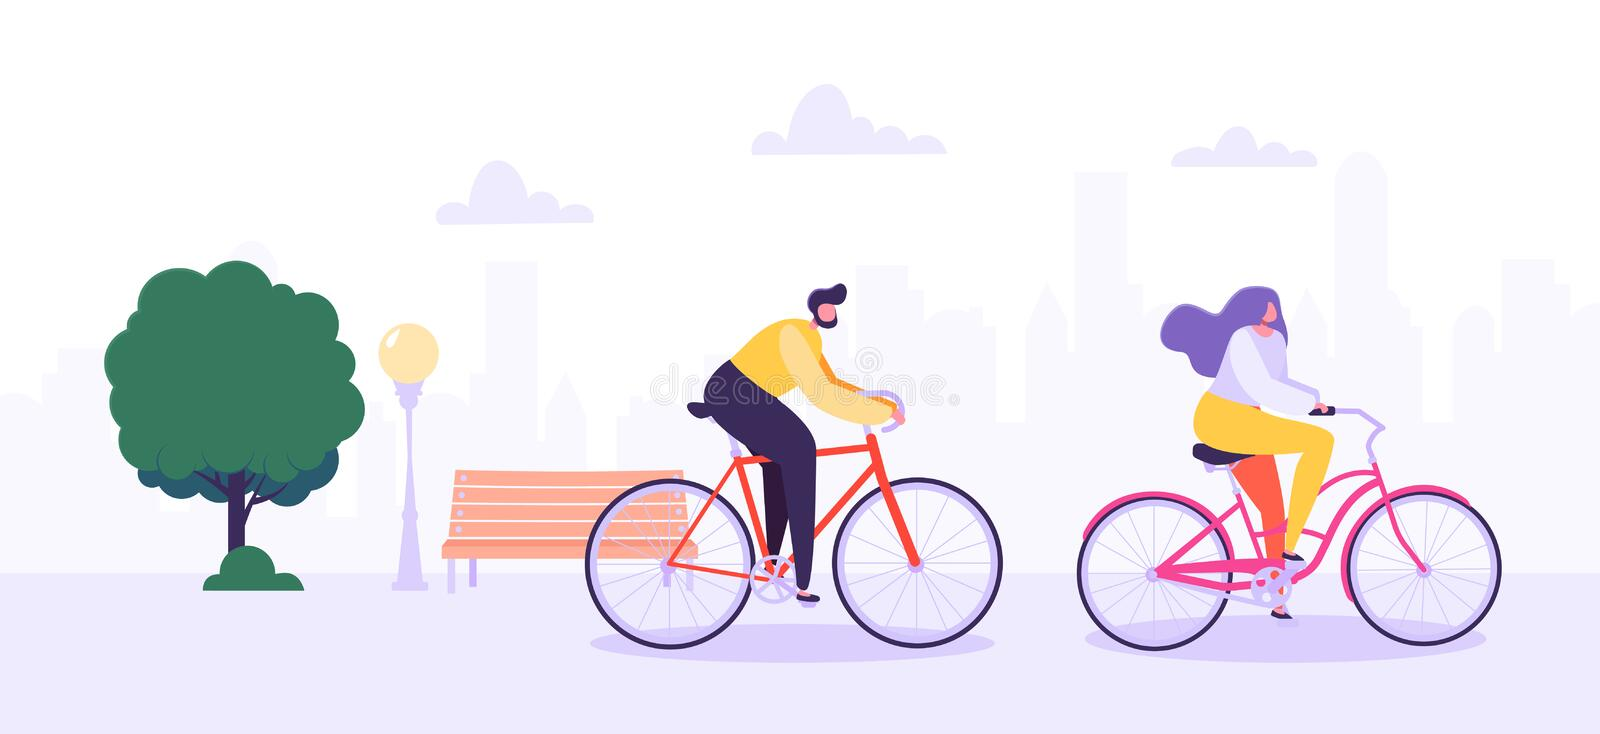 Man and Woman Characters Riding Bicycle in the City Background. Active People Enjoying Bike Ride in the Park royalty free illustration